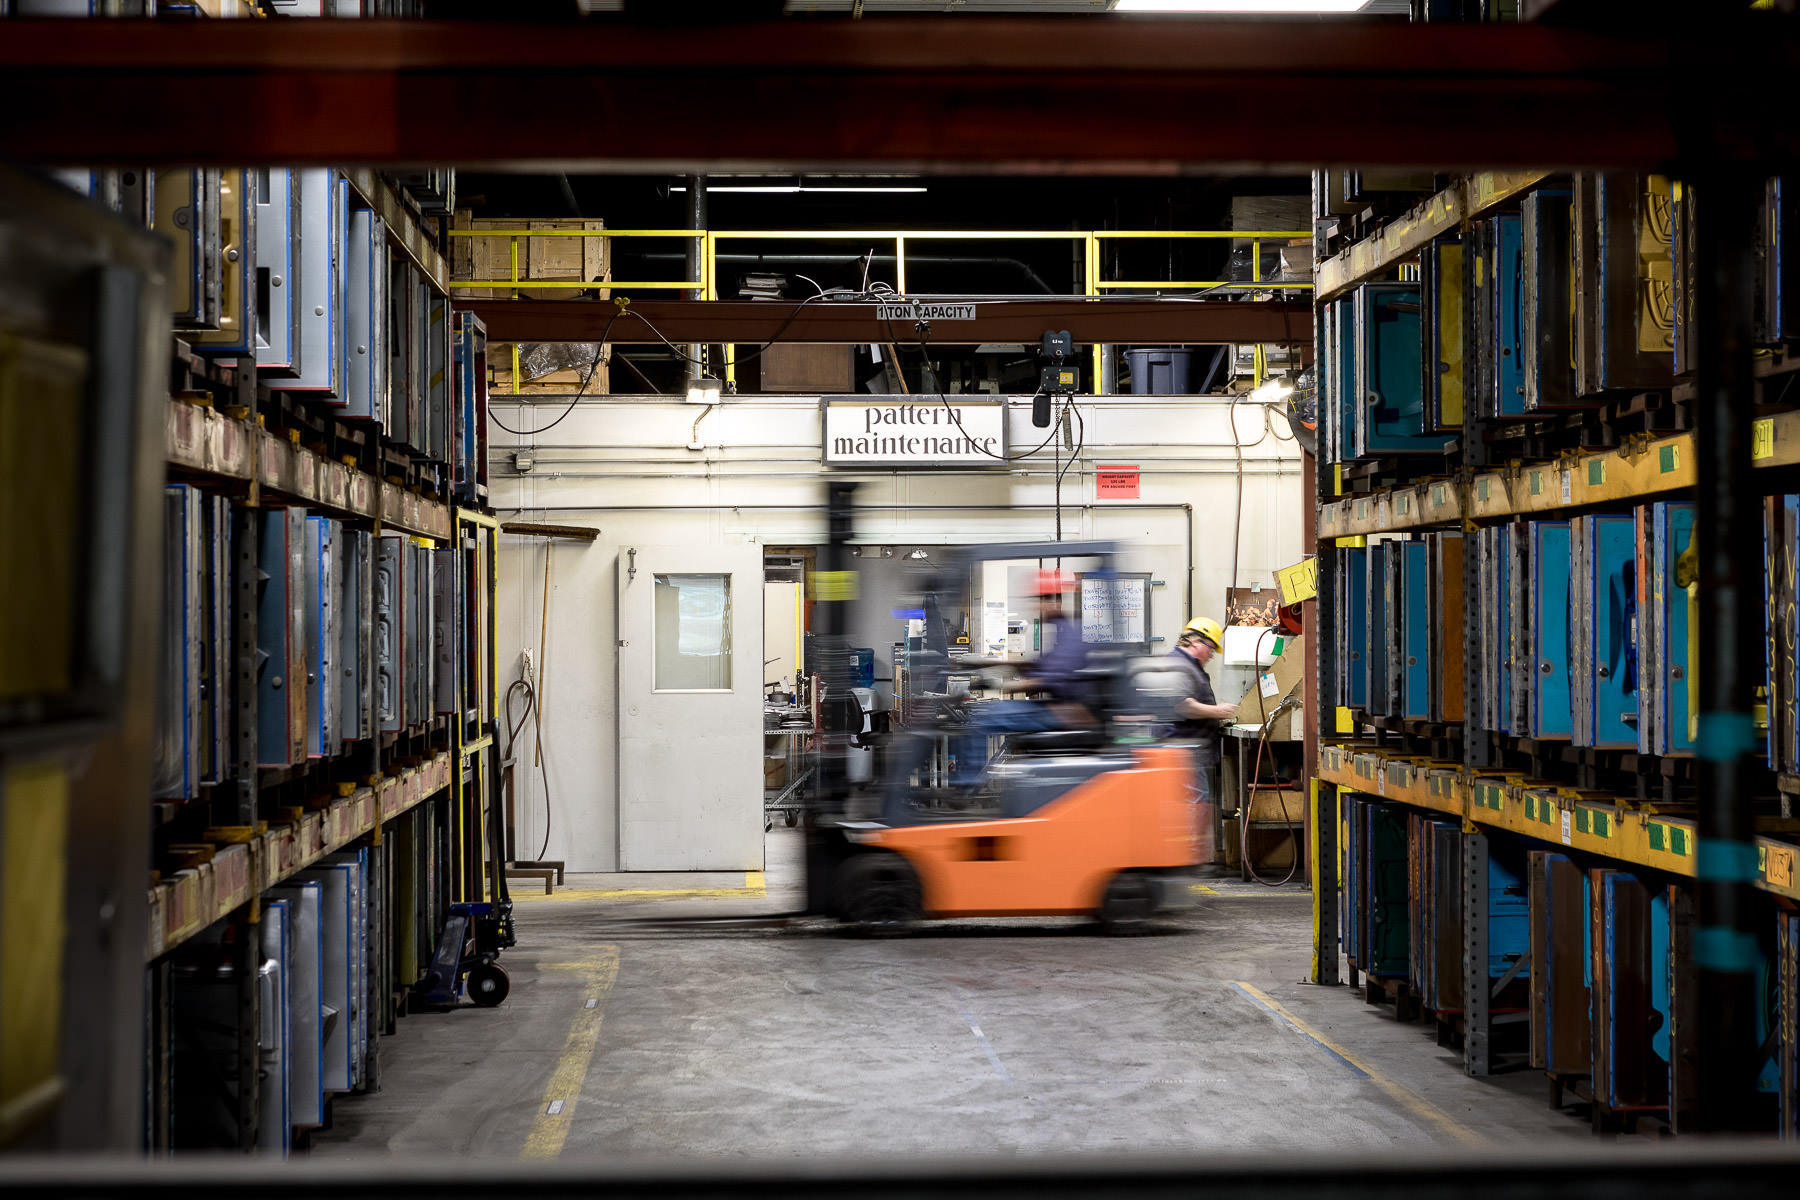 An interior photo of a forklift at work between rows of iron casts in the renovated Vermont Castings manufacturing facility built by Neagley & Chase Construction and photographed by Stina Booth